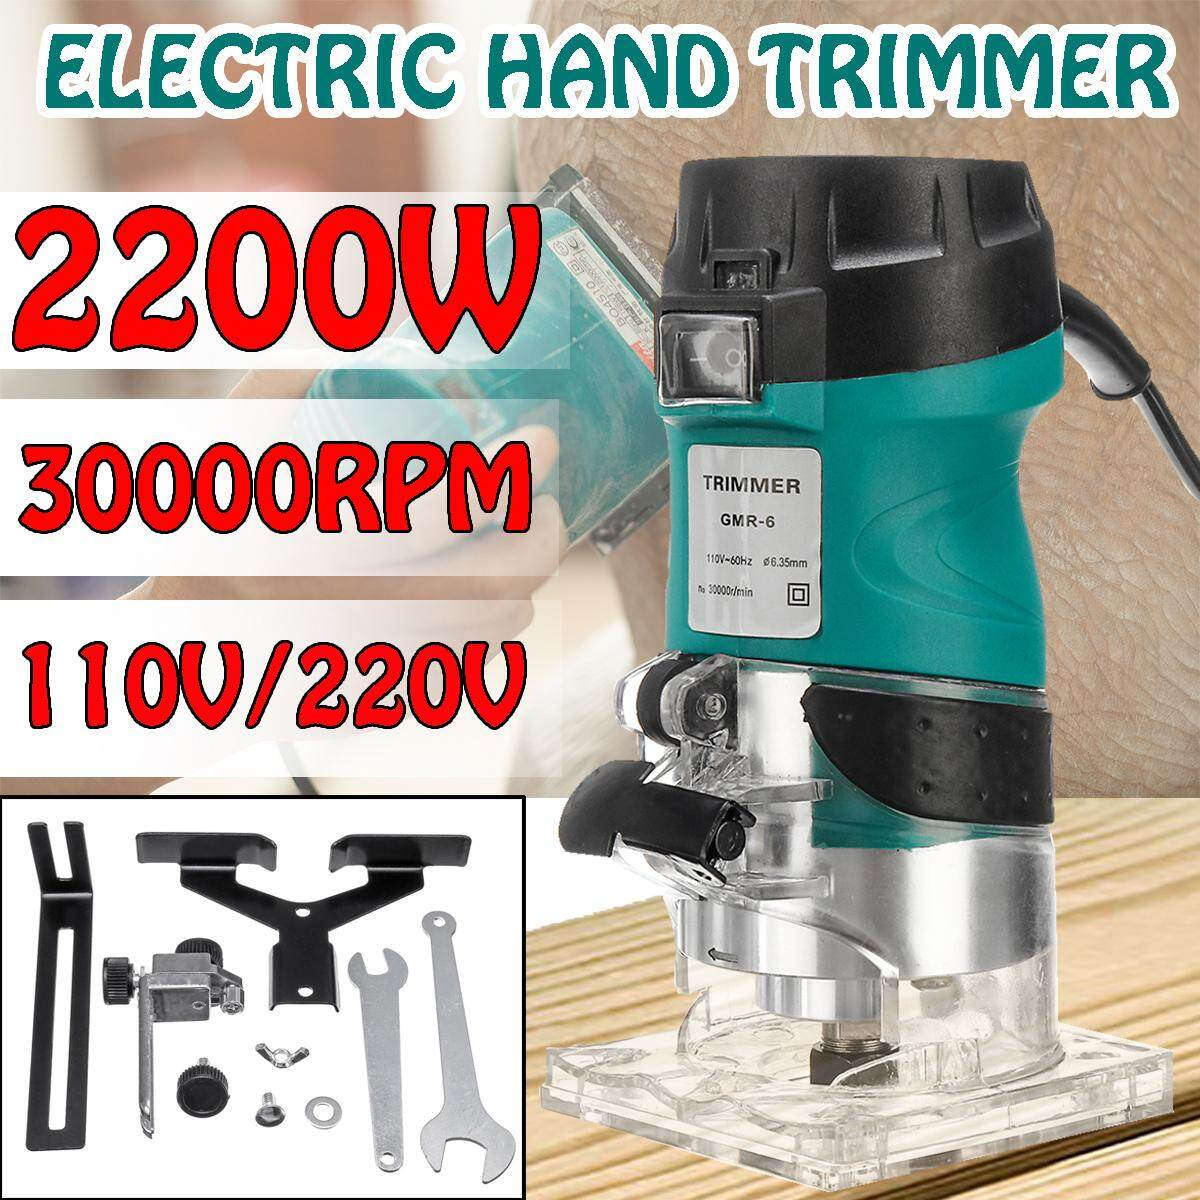 2200W 30000RPM 220V 1/4 Inch Electric Hand Trimmer Wood Laminate Palm Router Joiners Tool Woodenworking